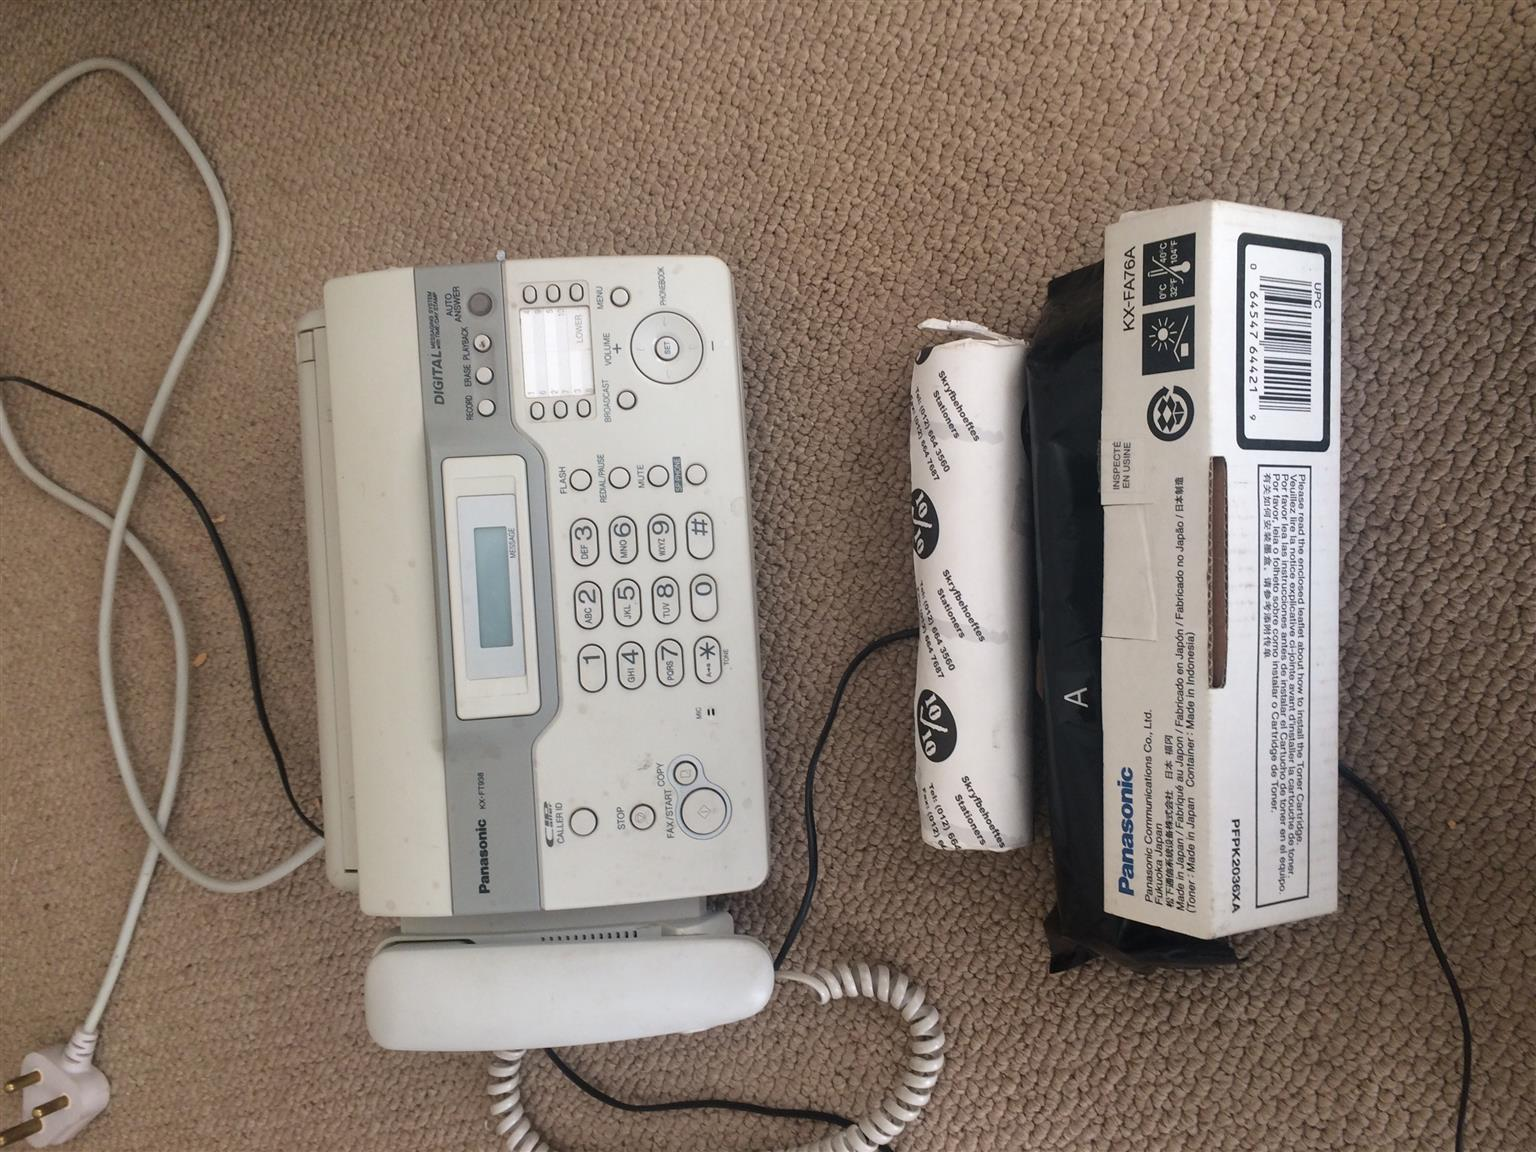 Panasonic KX-FT938 Telephone / Fax / Answering Machine (Digital Messaging System with Time/Day Stamp)